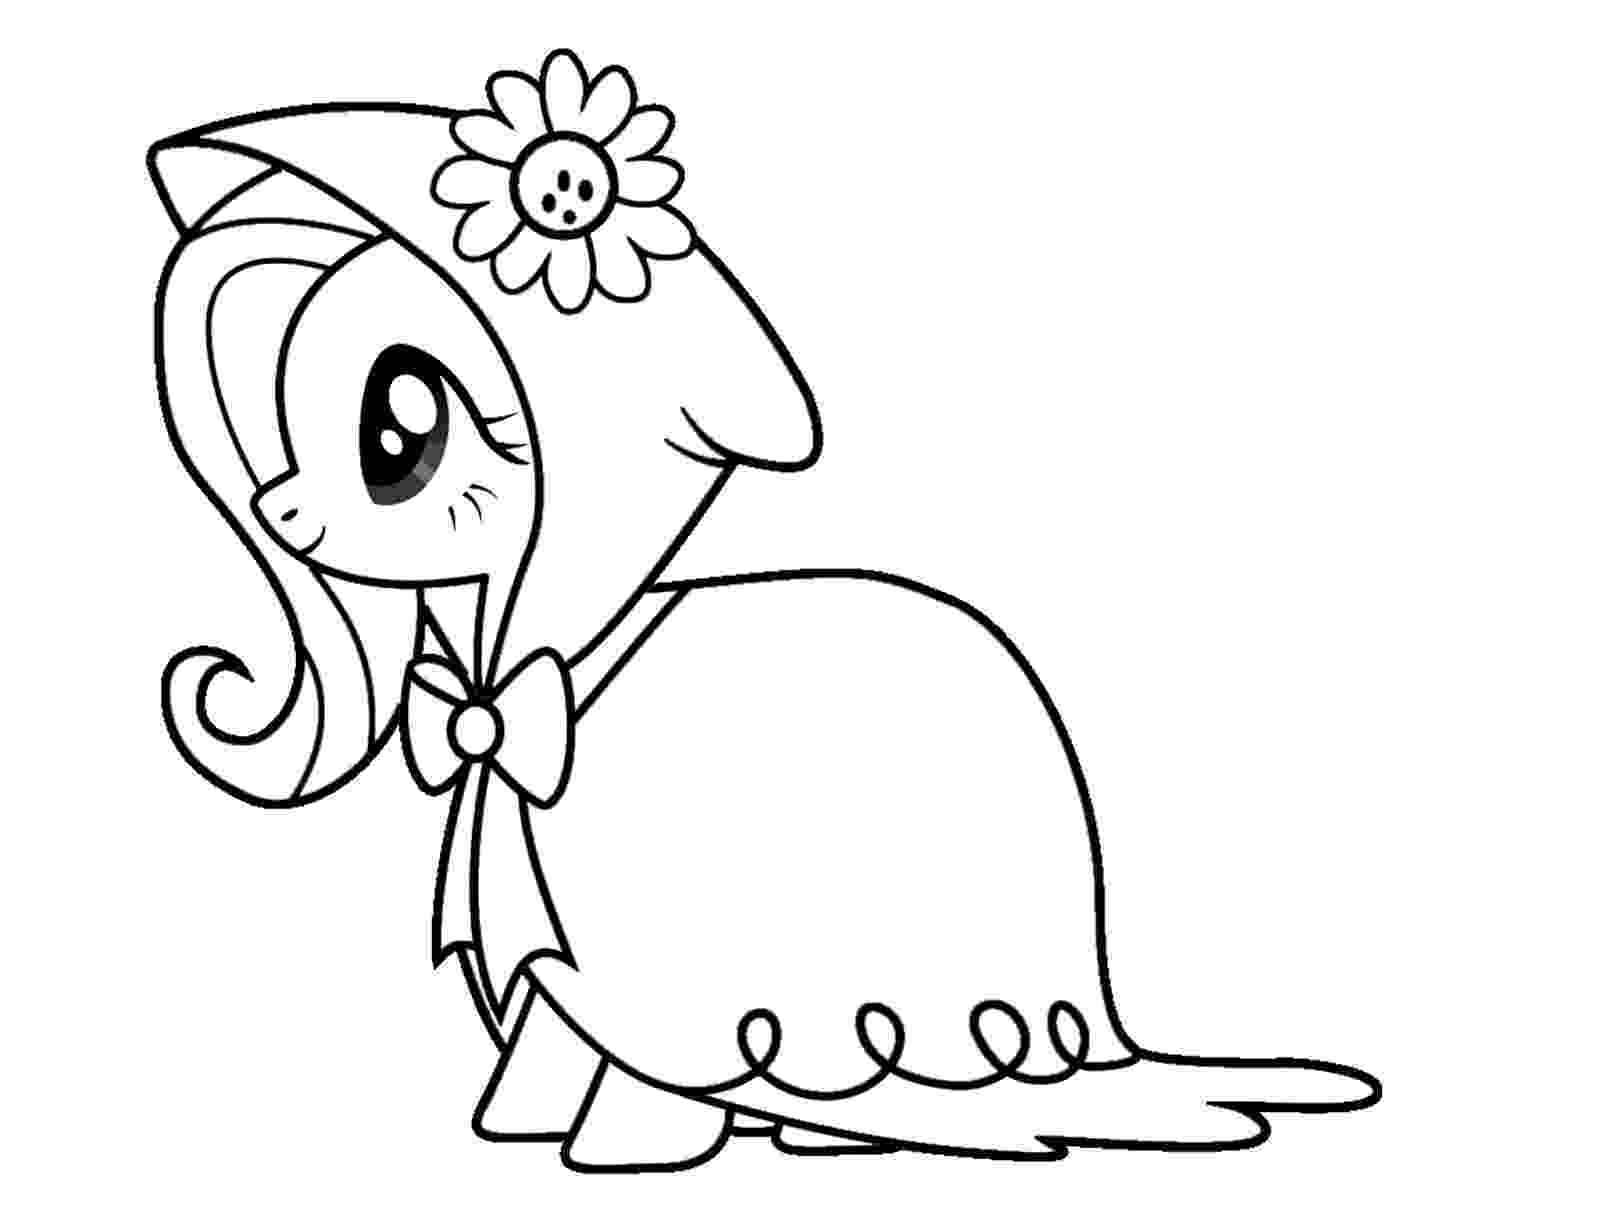 coloring pages of fluttershy my little pony fluttershy coloring pages minister coloring coloring pages fluttershy of